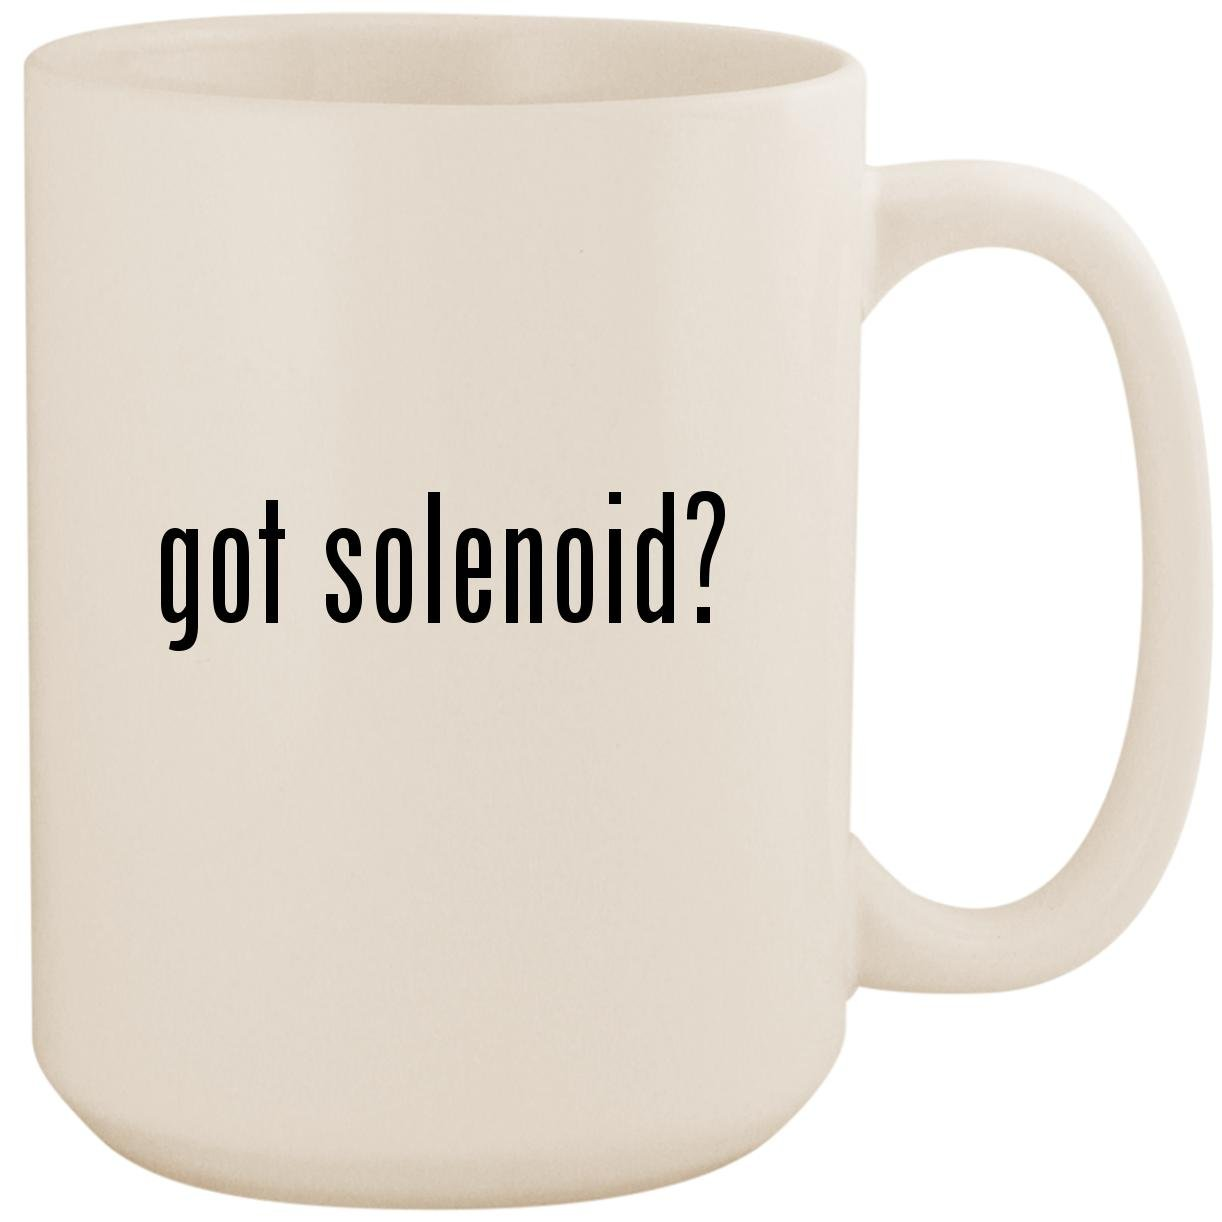 got solenoid? - White 15oz Ceramic Coffee Mug Cup